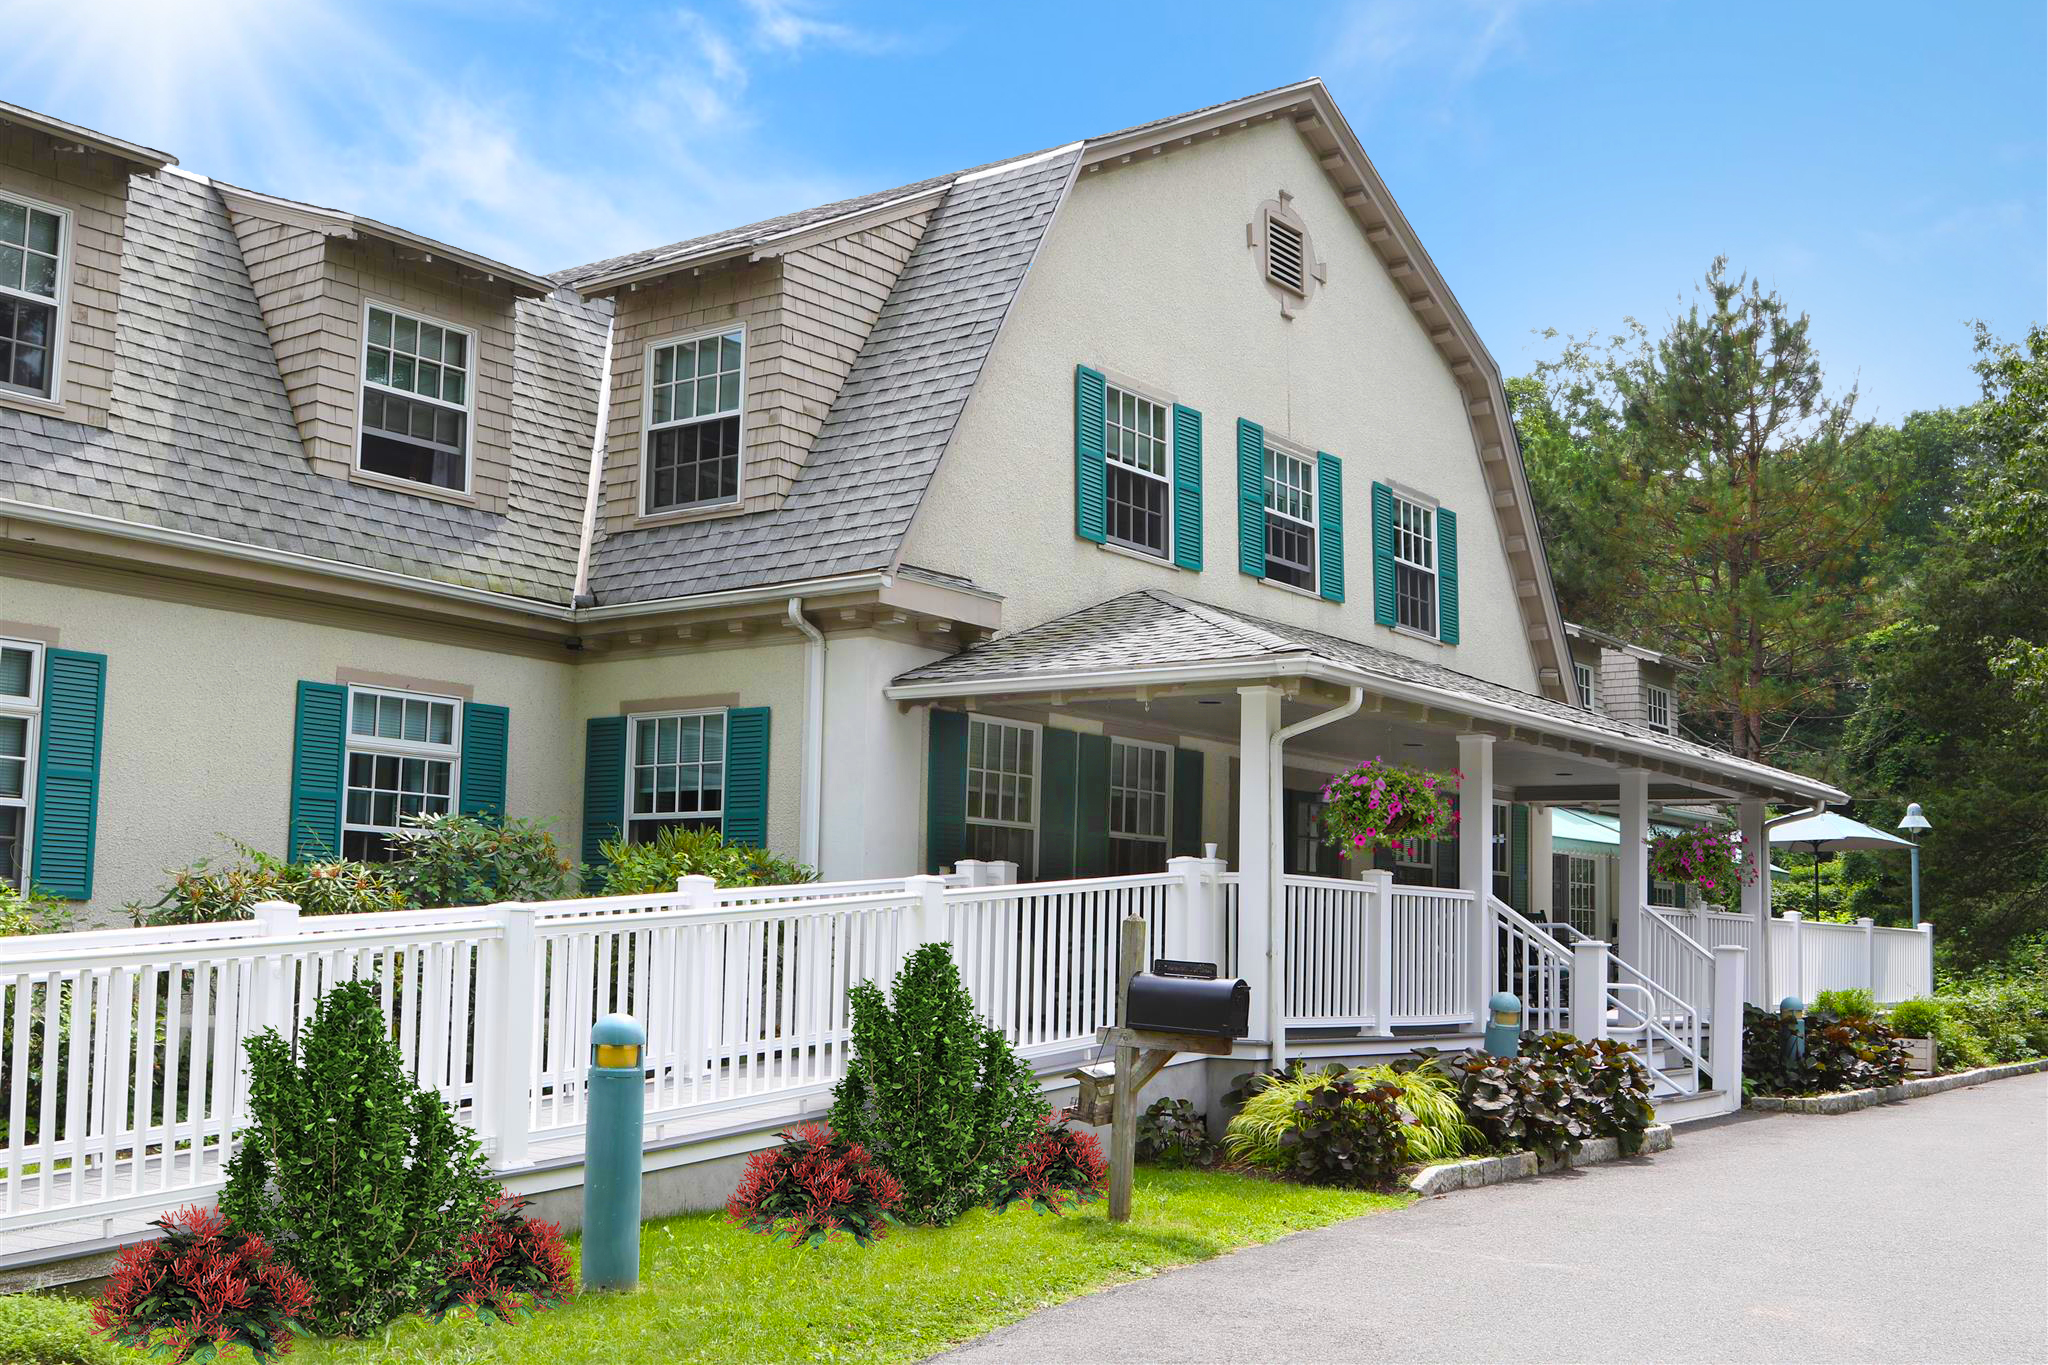 Image of Parsonge Cottage Senior Residence in Greenwich, Connecticut